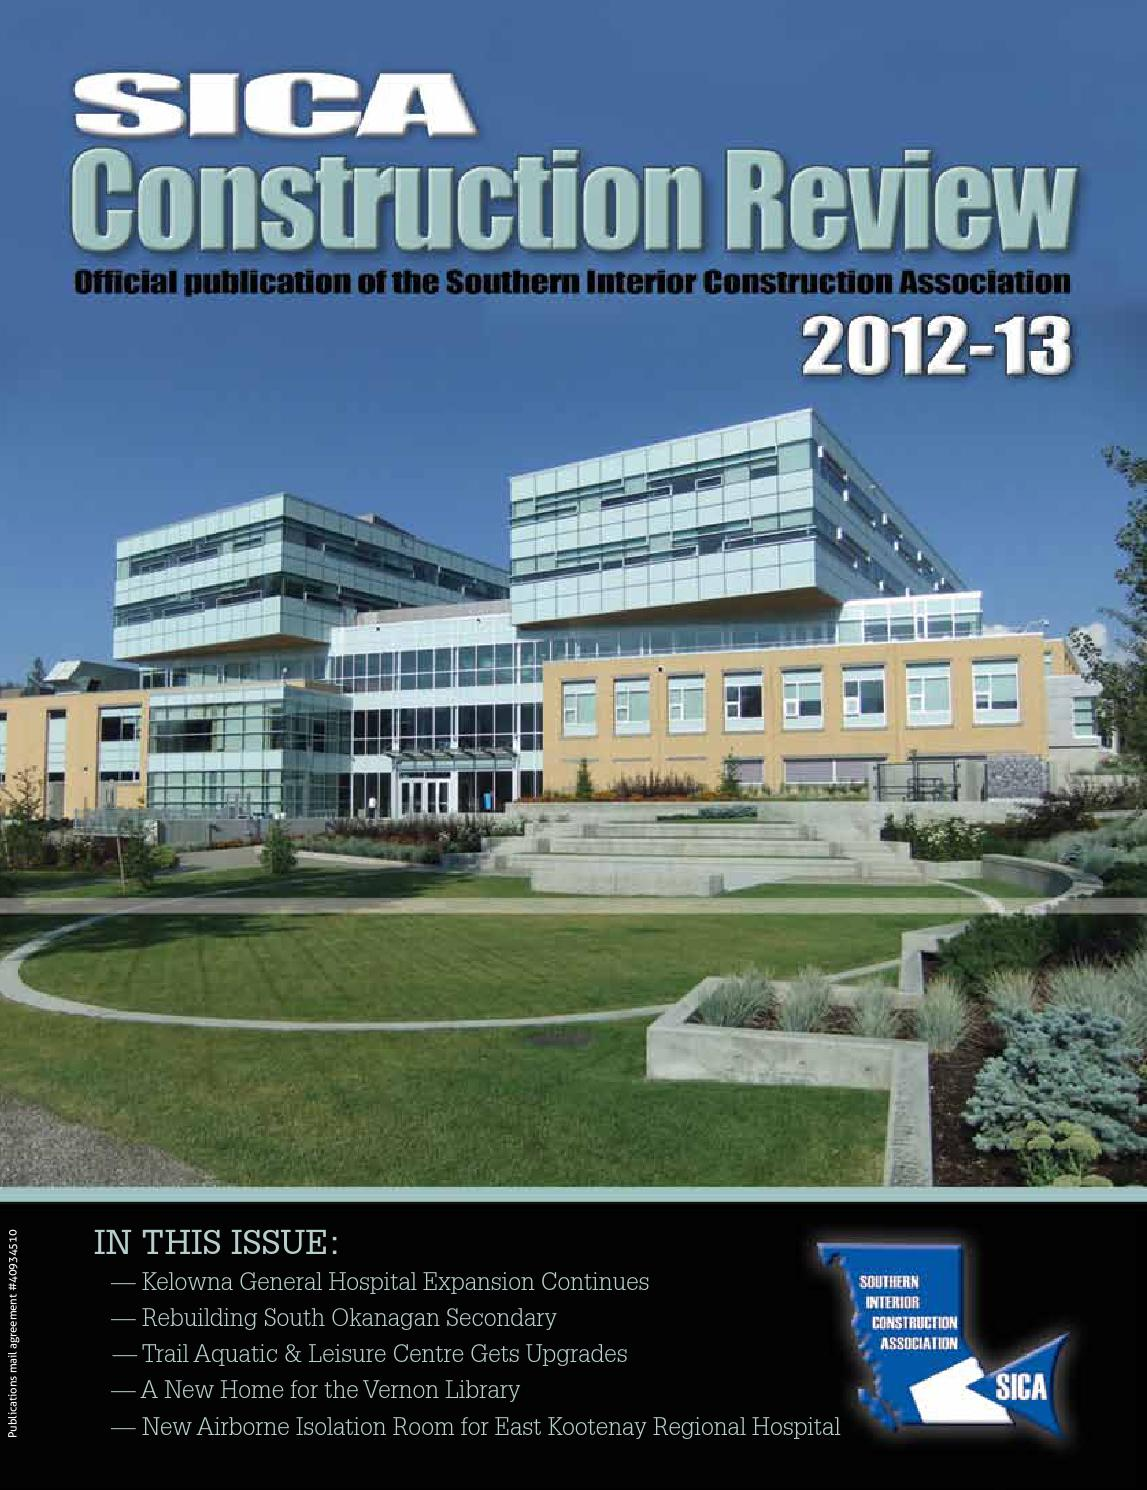 SICA Construction Review 2012 13 by SICAbc